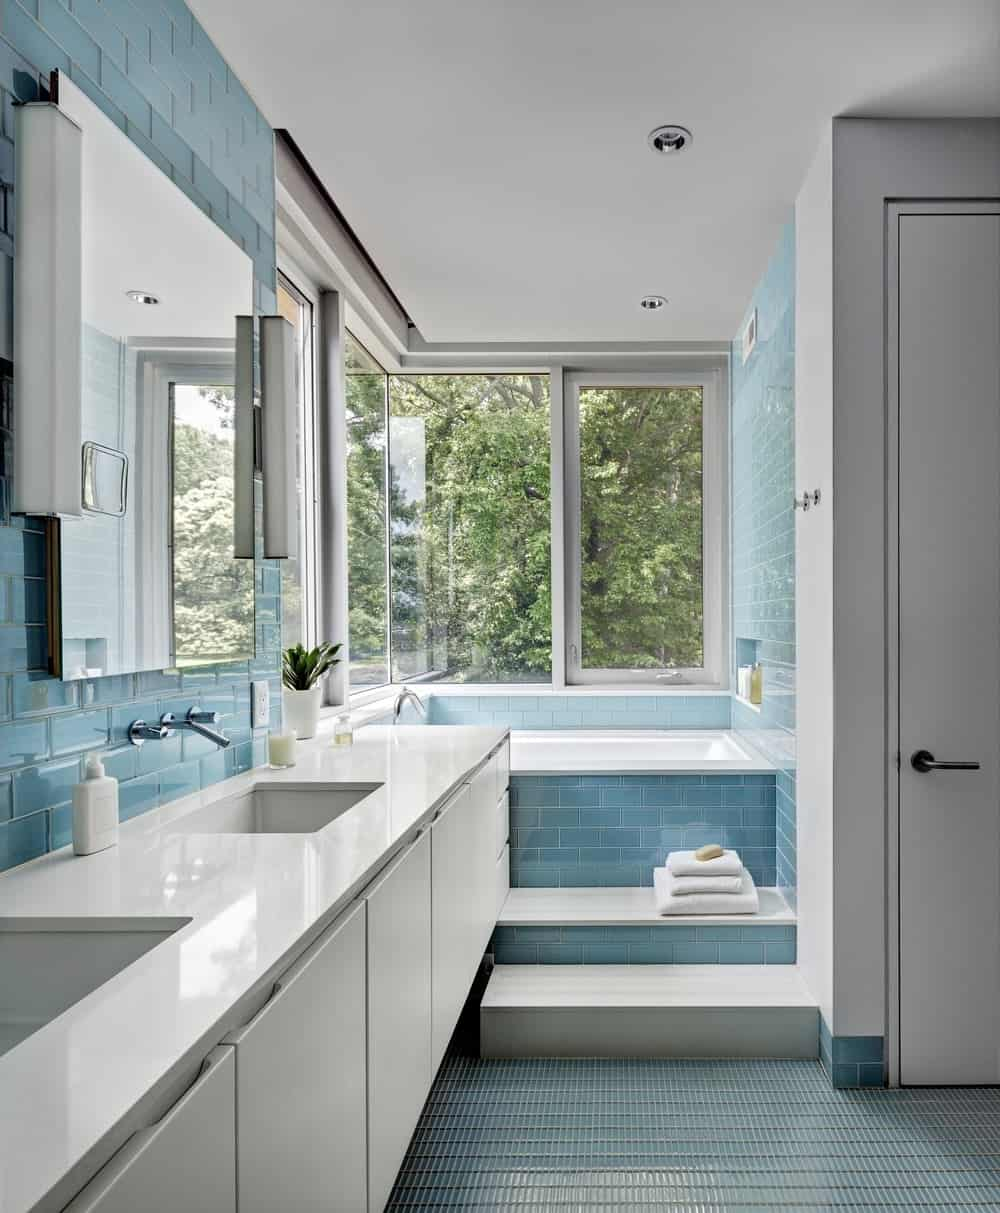 Bathroom featuring blue tiles wall and flooring along with a double sink and corner tub. Photo Credit: Francis Dzikowski/OTTO